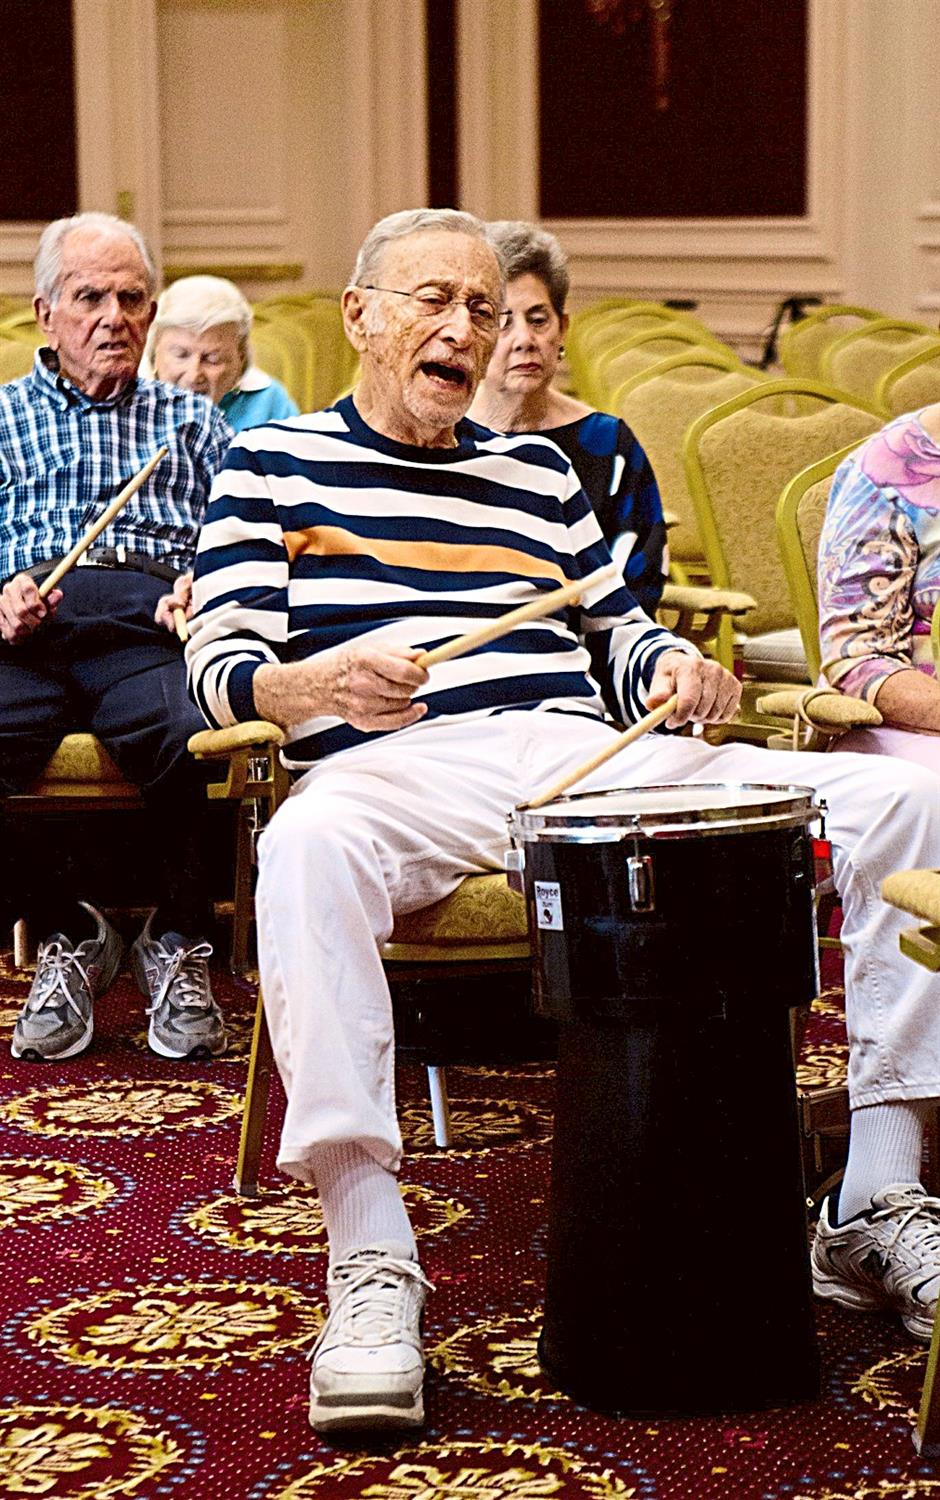 Sam Nevel and other residents of The Palace in Coral Gables, Florida, participating in a drum circle. Music brings back happy memories and mends grieving hearts.